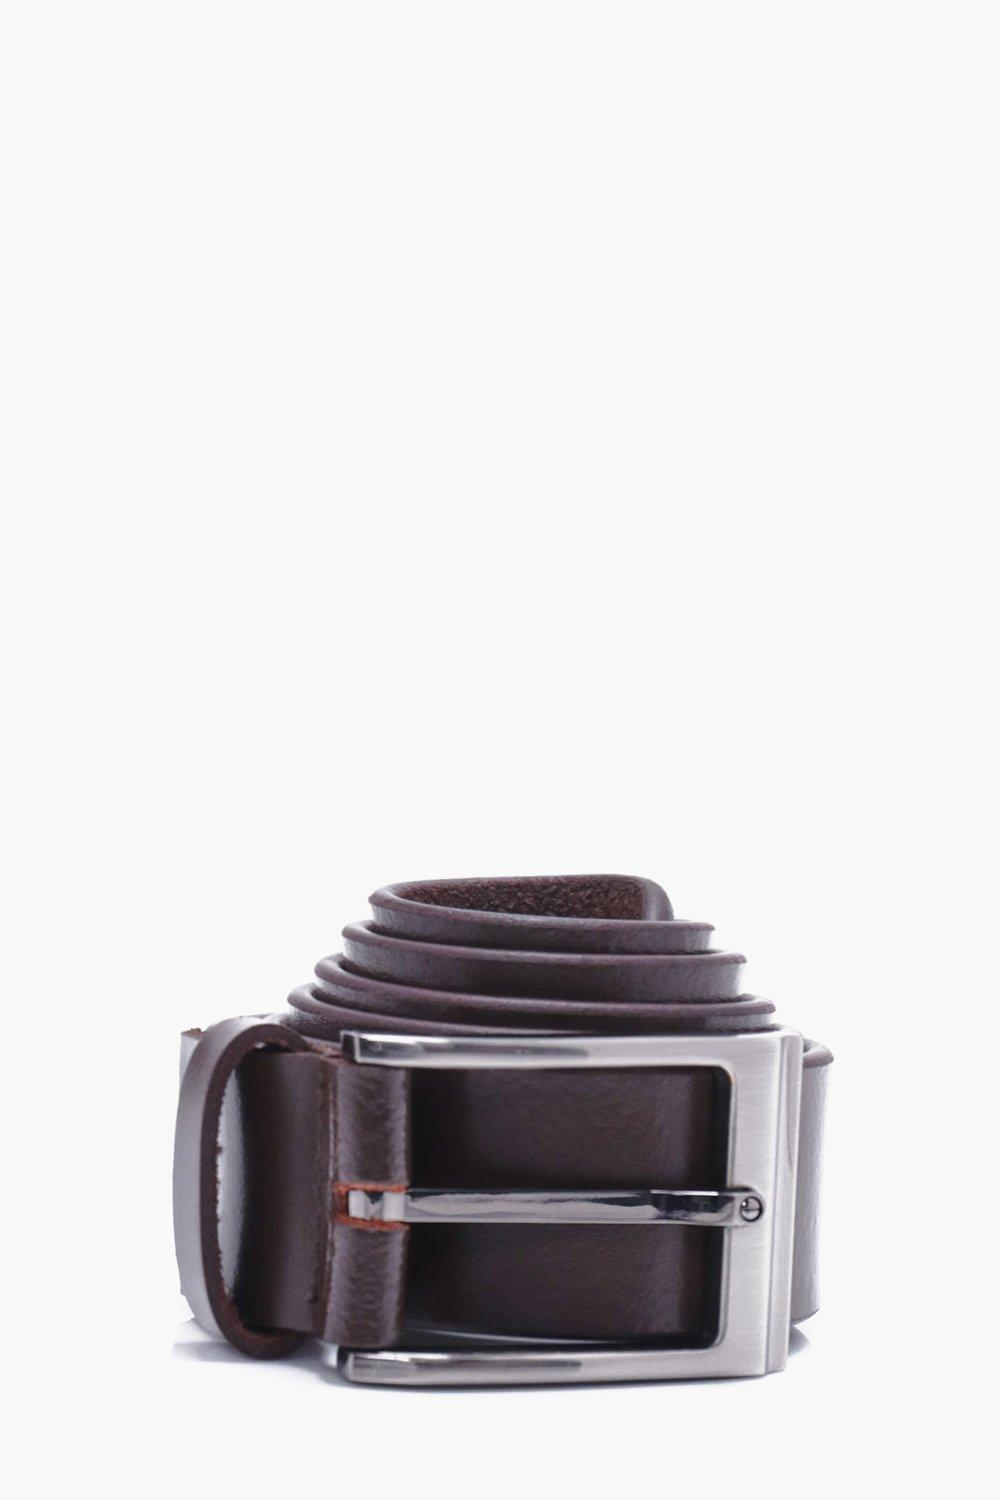 Leather Belt - brown - Real Leather Belt - brown